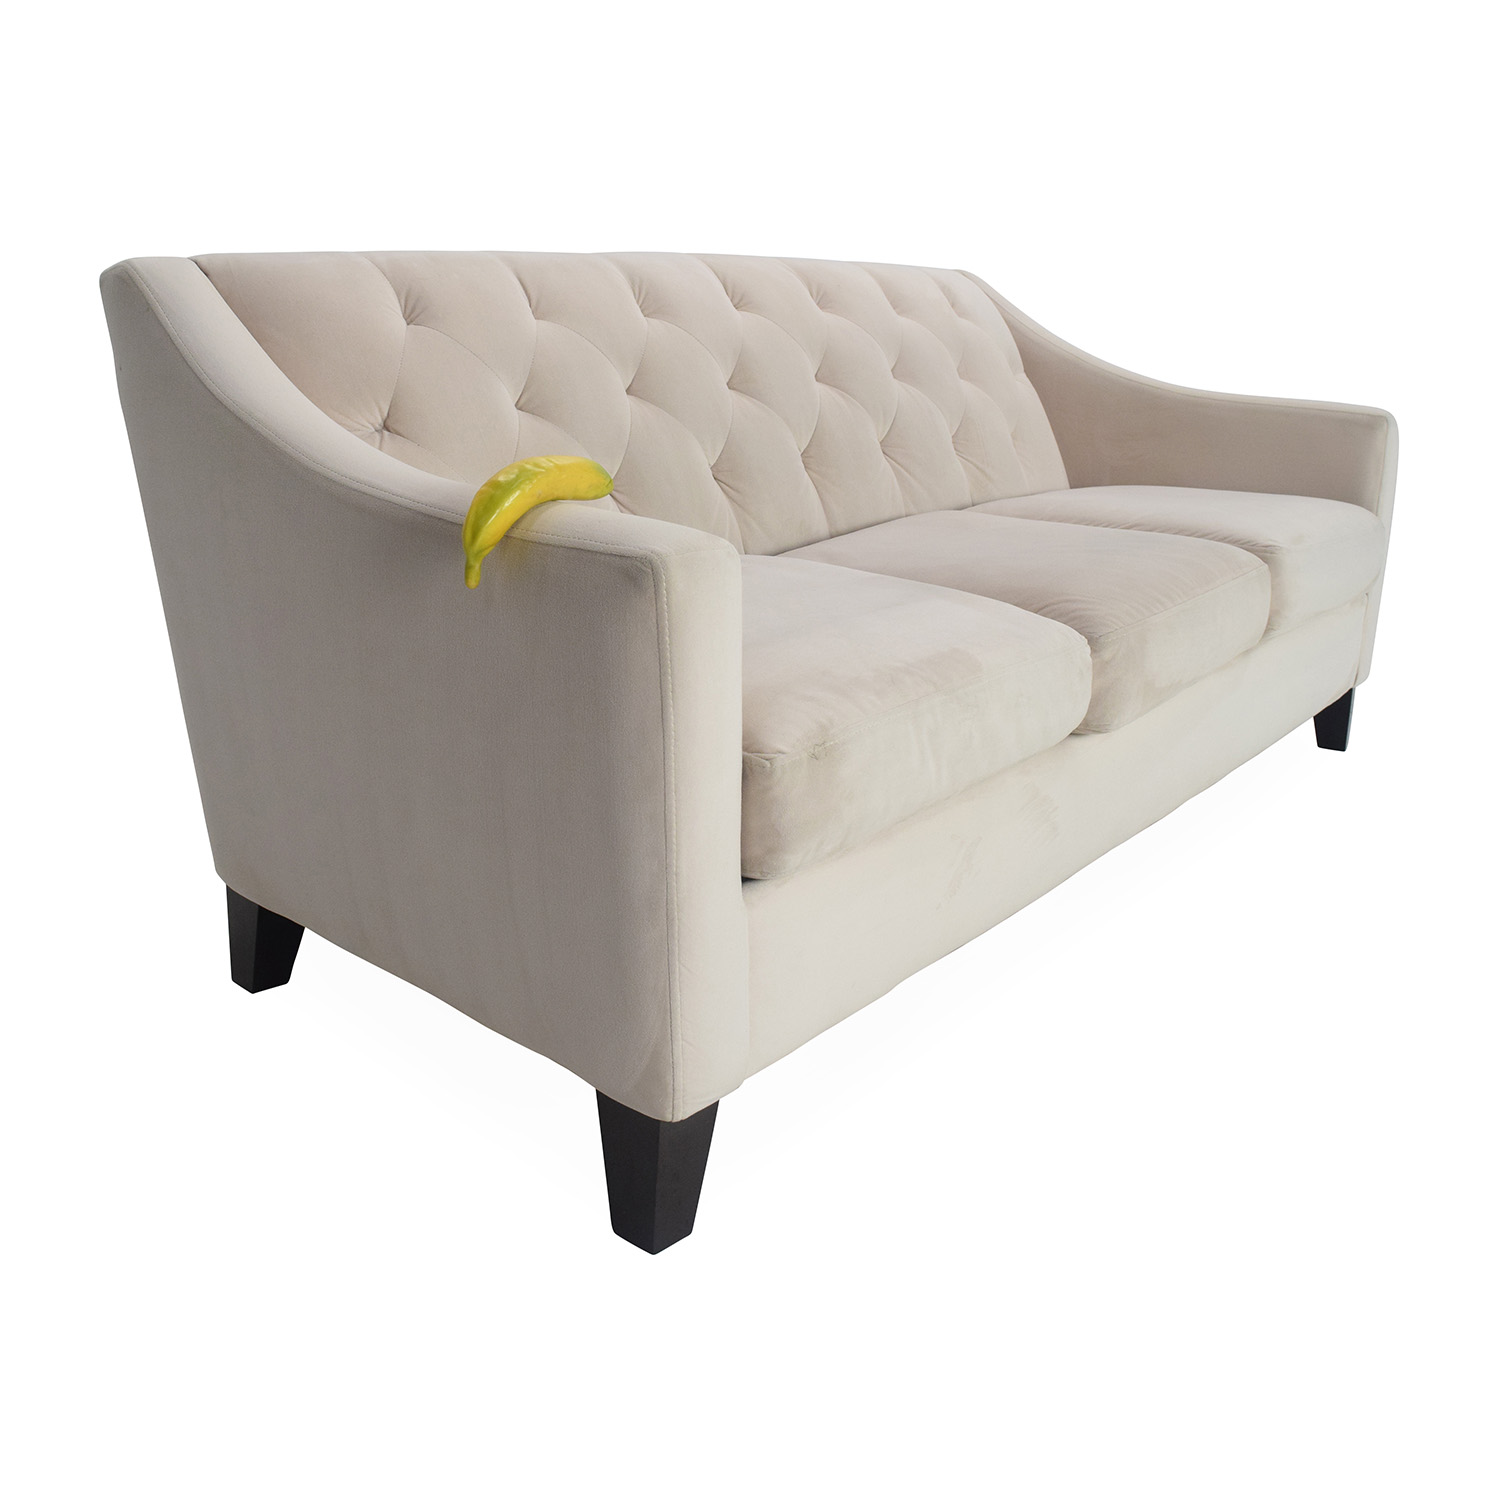 Tufted Sofa Great Haute House Rebecca Tufted Sofa With Tufted Sofa Cheap Tufted Sofa With